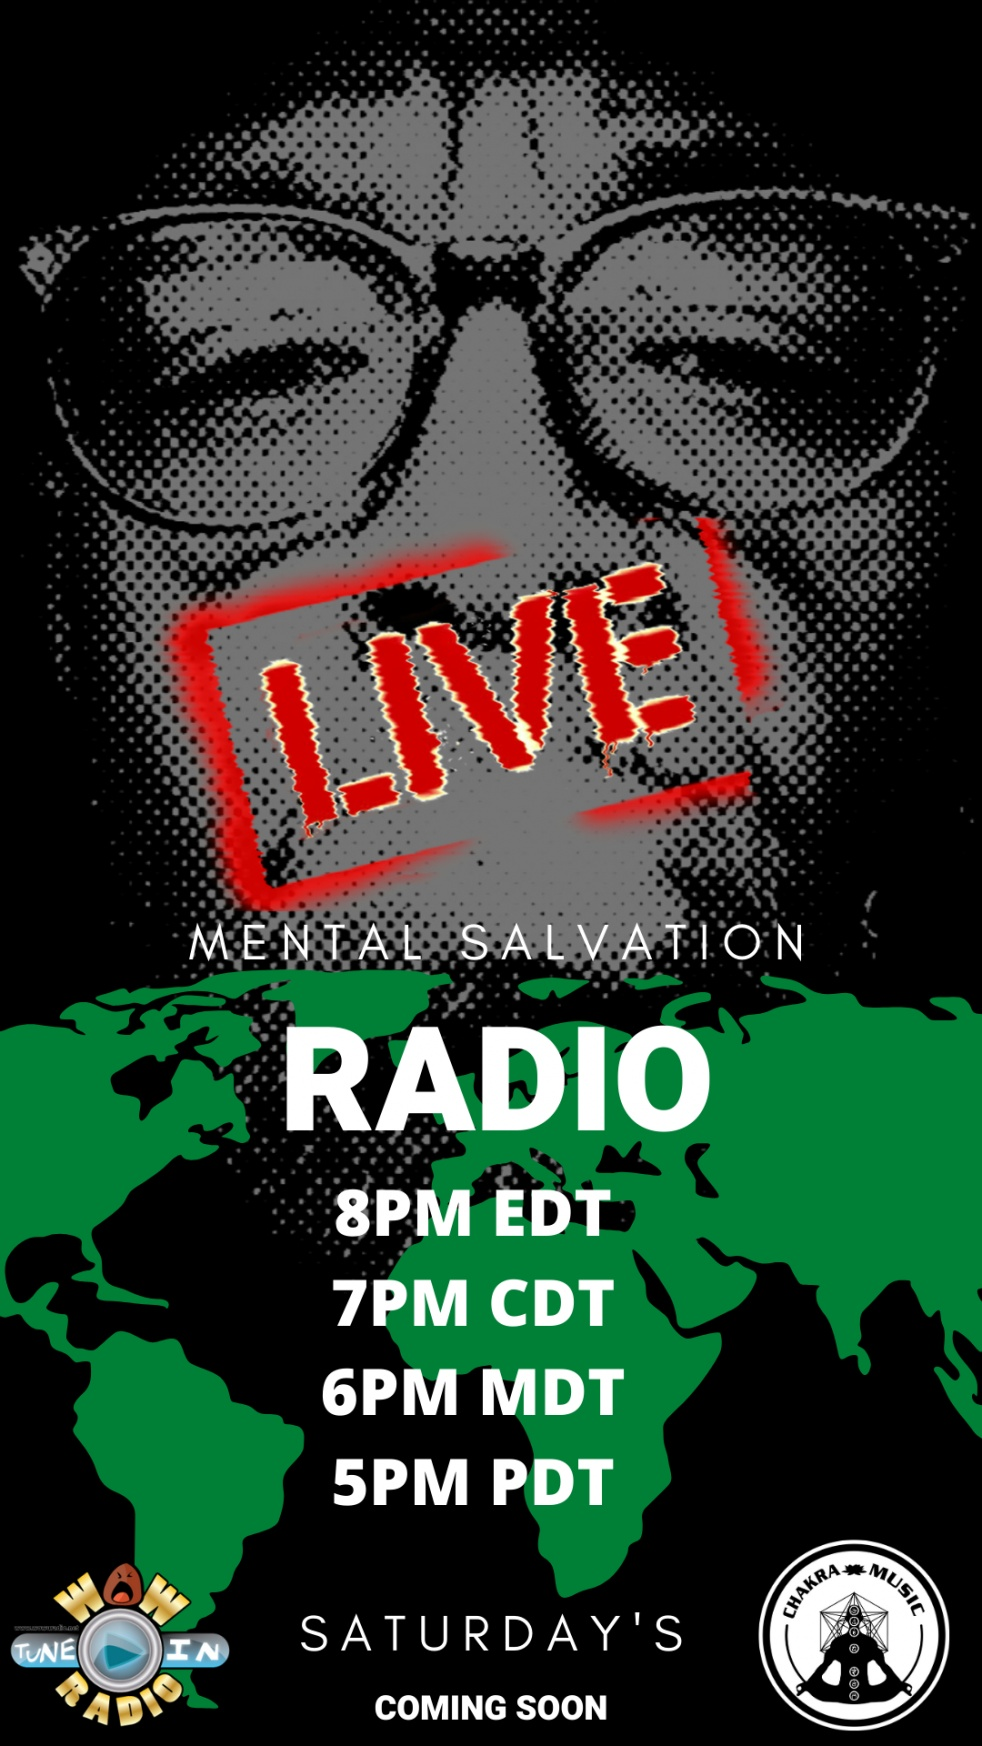 Mental Salvation Radio - Cover Image